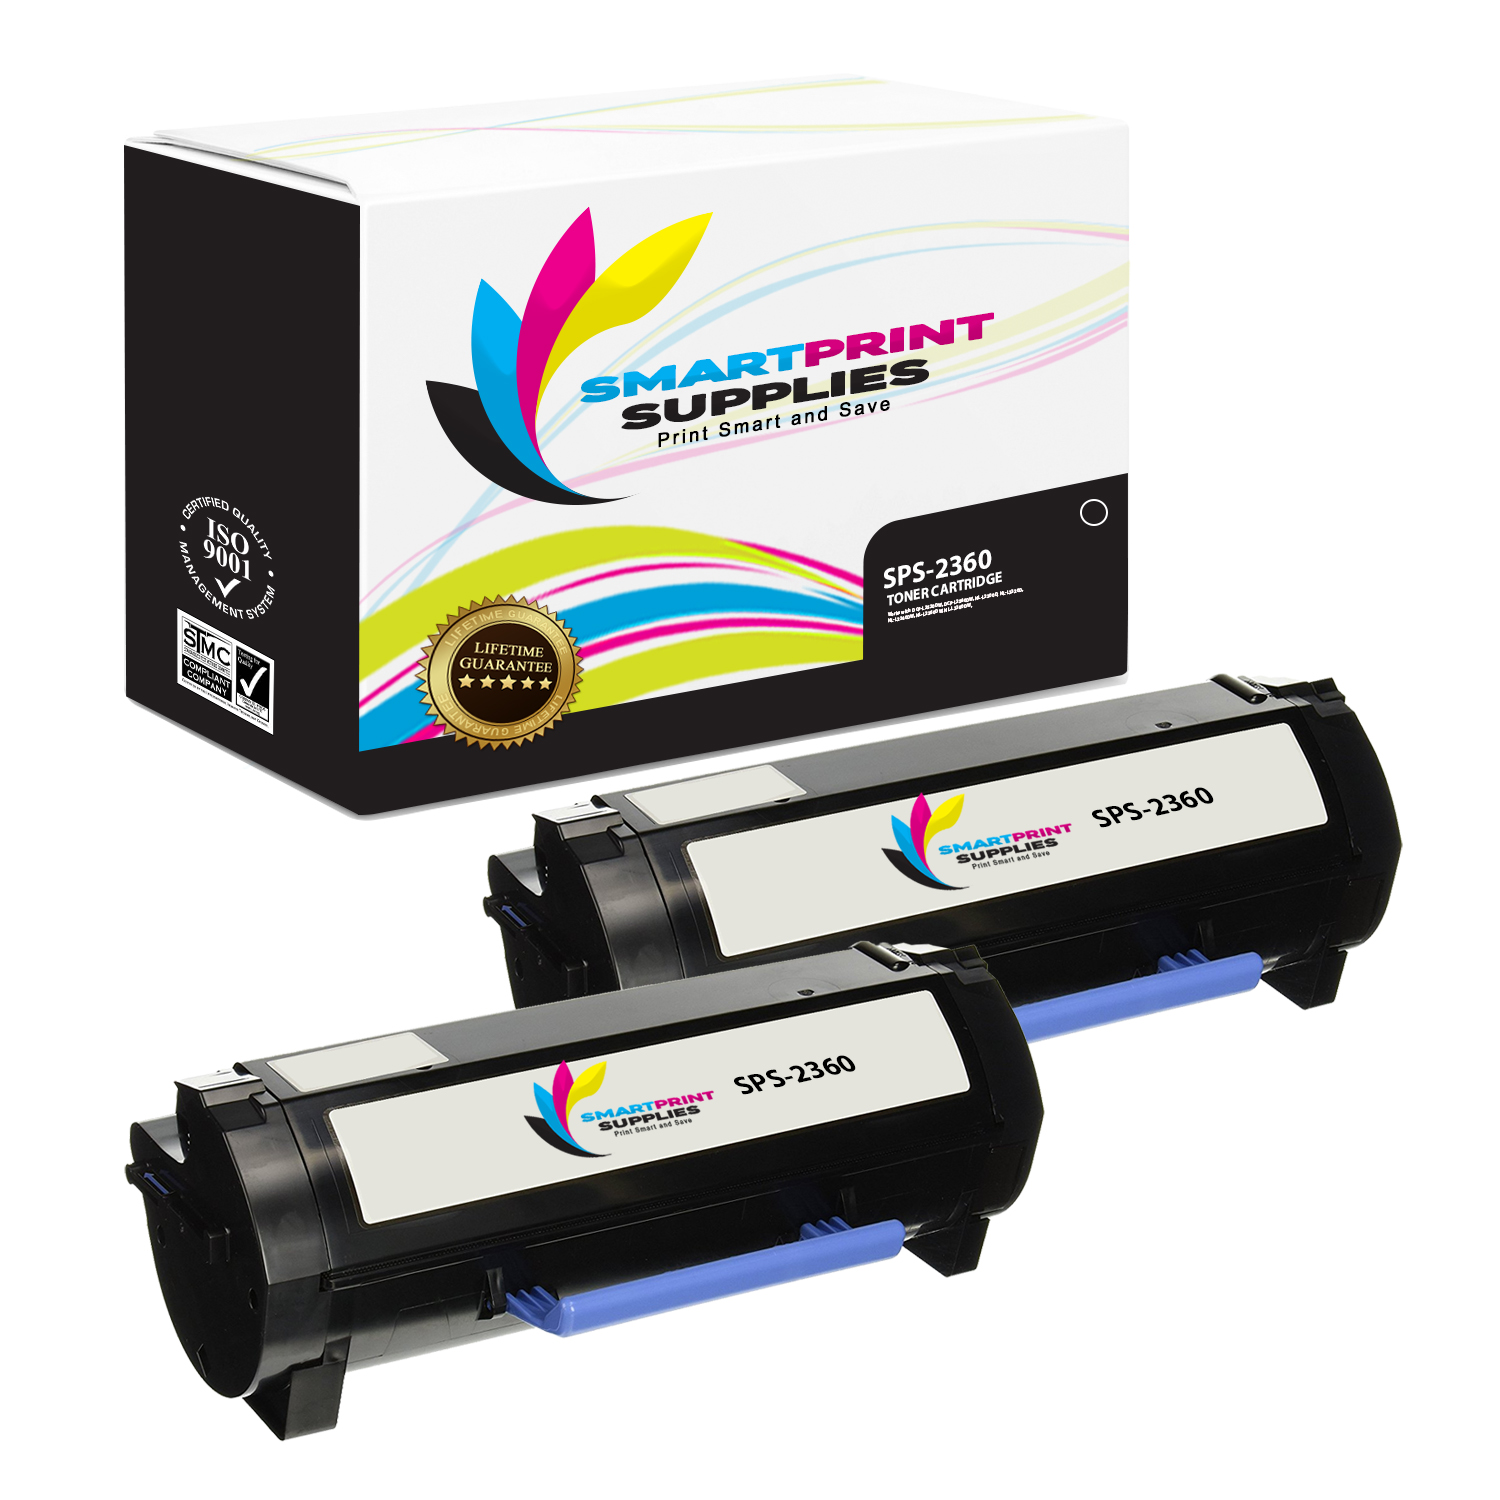 4 Pack Smart Print Supplies Compatible 331-9803 Black Toner Cartridge Replacement for Dell B2360 3460 3465 Printers 2,500 Pages